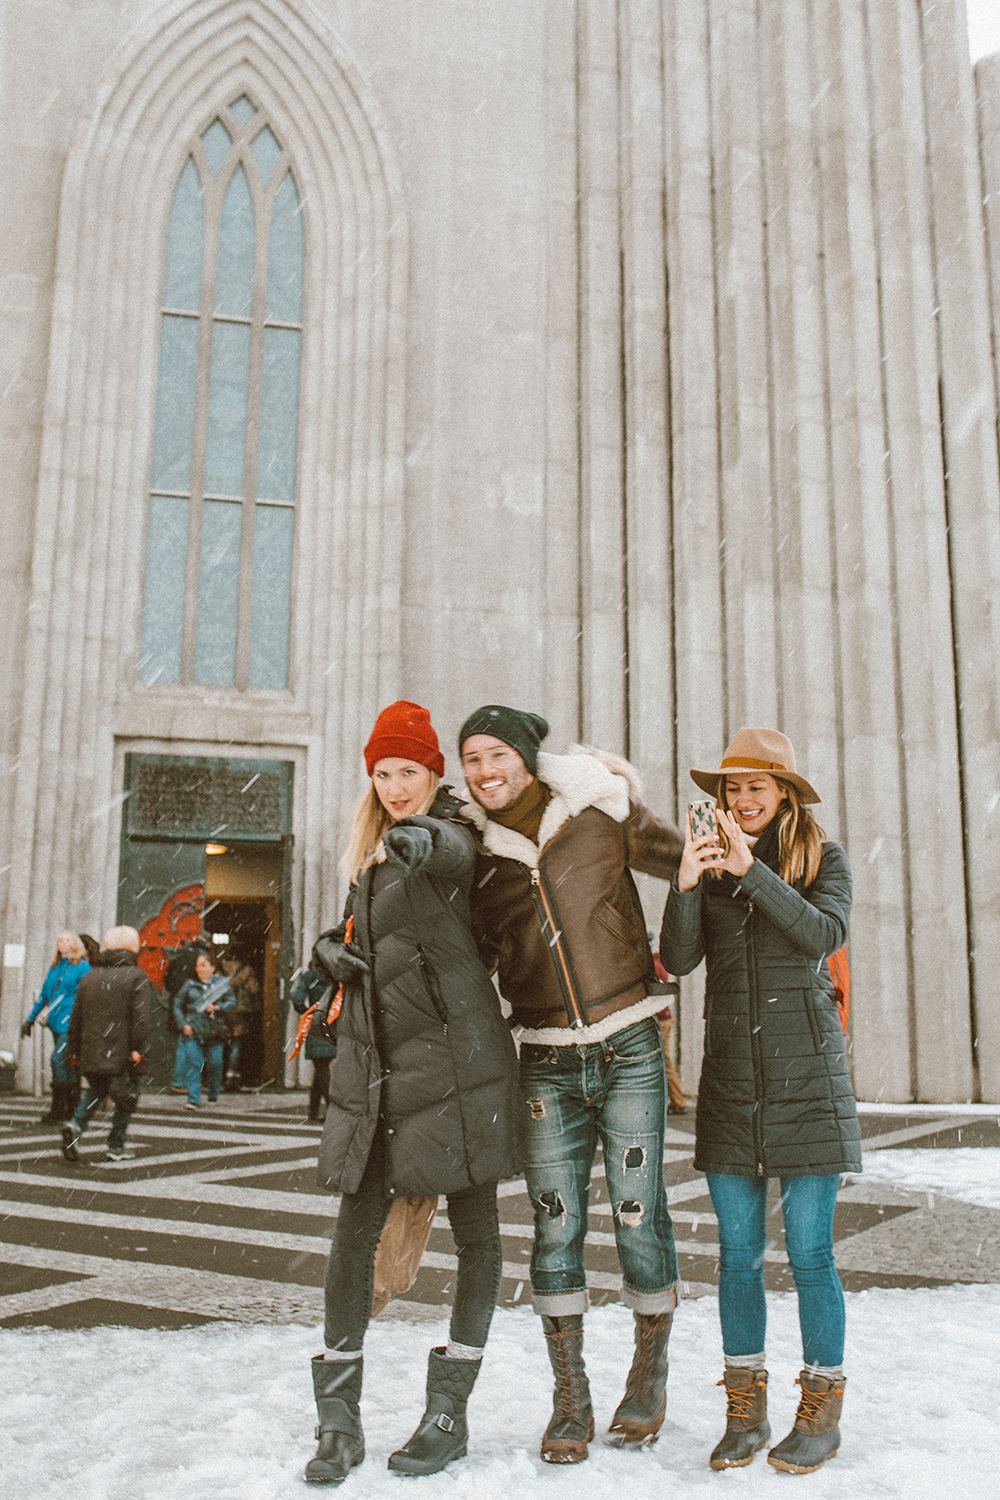 livvyland-blog-olivia-watson-travel-lifestyle-blogger-iceland-road-trip-what-to-do-pack-reykjavik-noken-travel-guide-Hallgrimskirkja-church-5